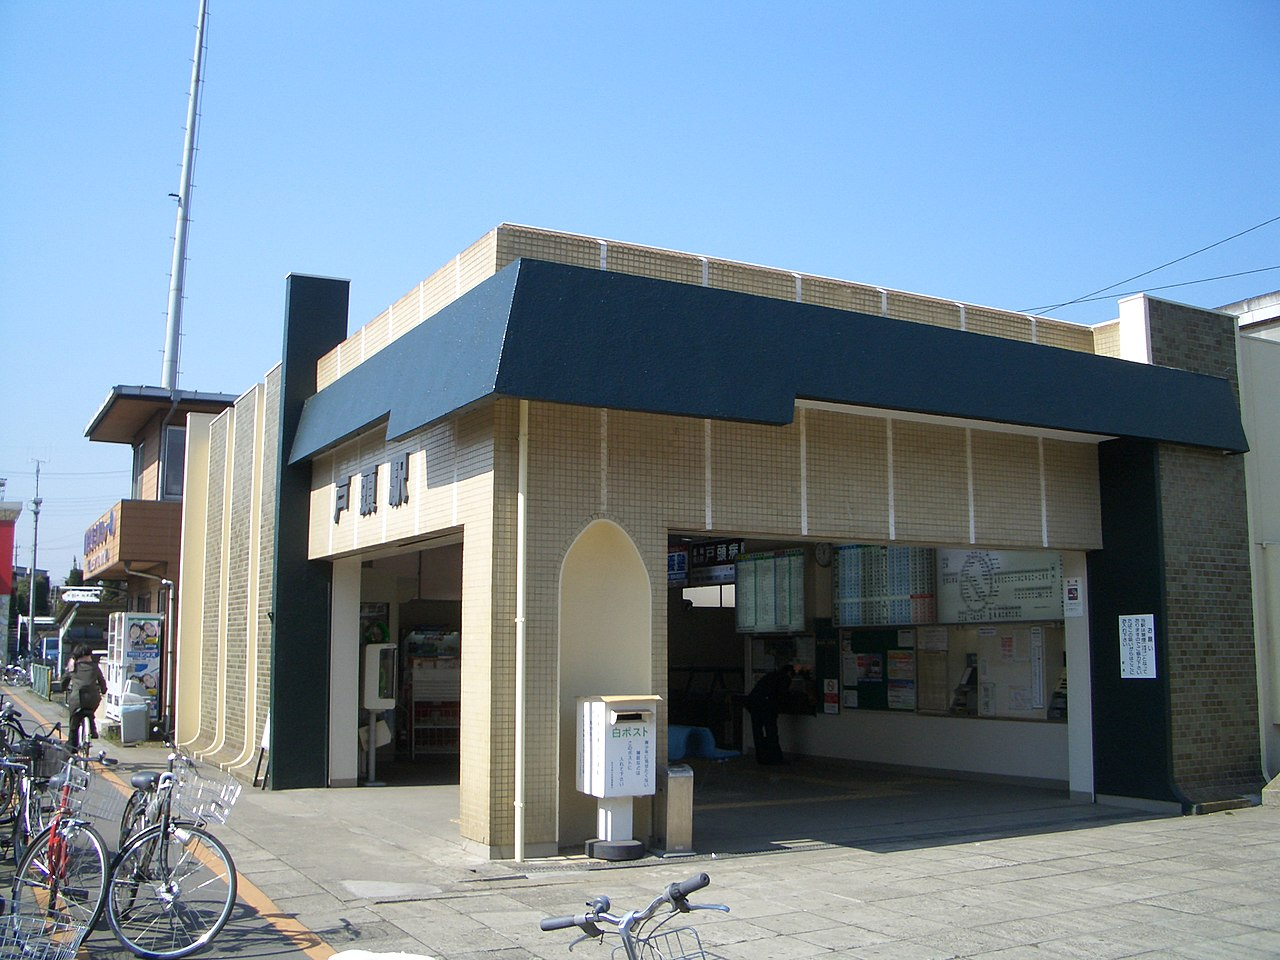 https://upload.wikimedia.org/wikipedia/commons/thumb/9/98/Togashira_Station.JPG/1280px-Togashira_Station.JPG